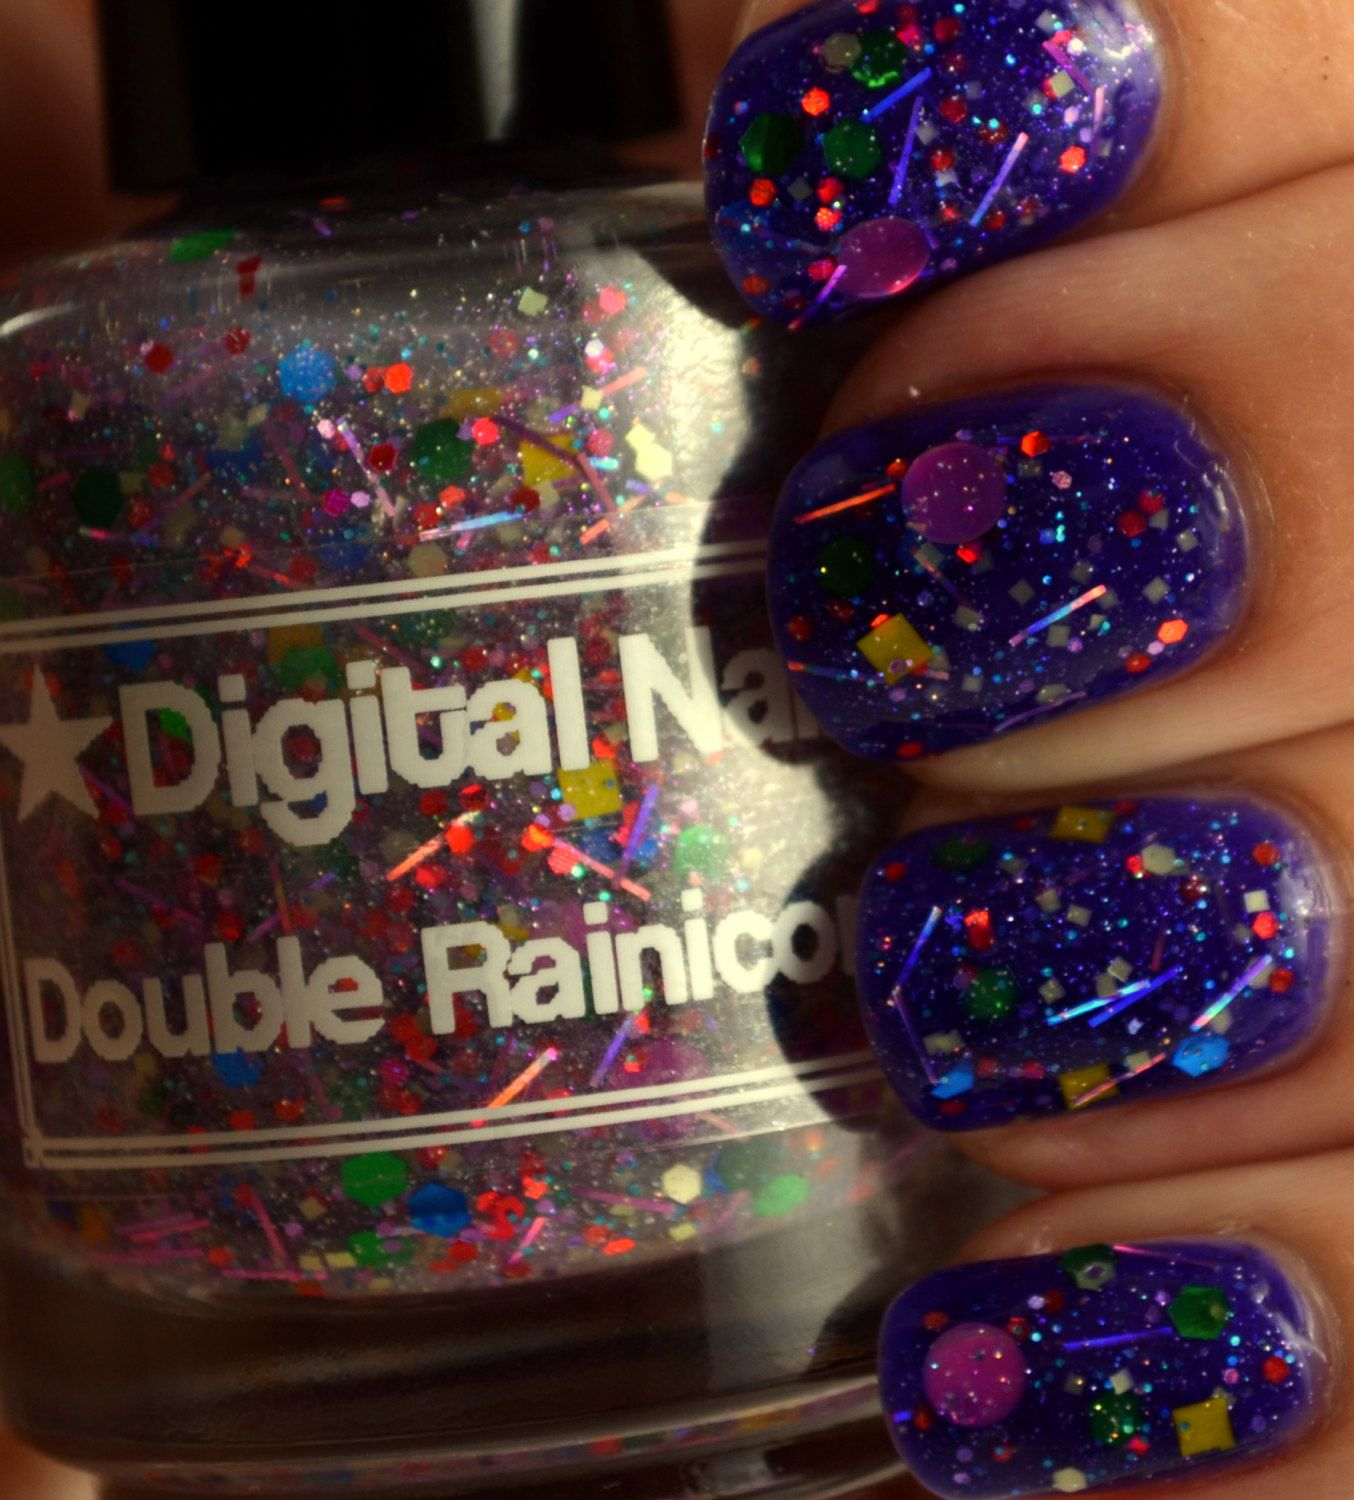 Double Rainicorn: a Digital Nails Nail lacquer inspired by Lady ...